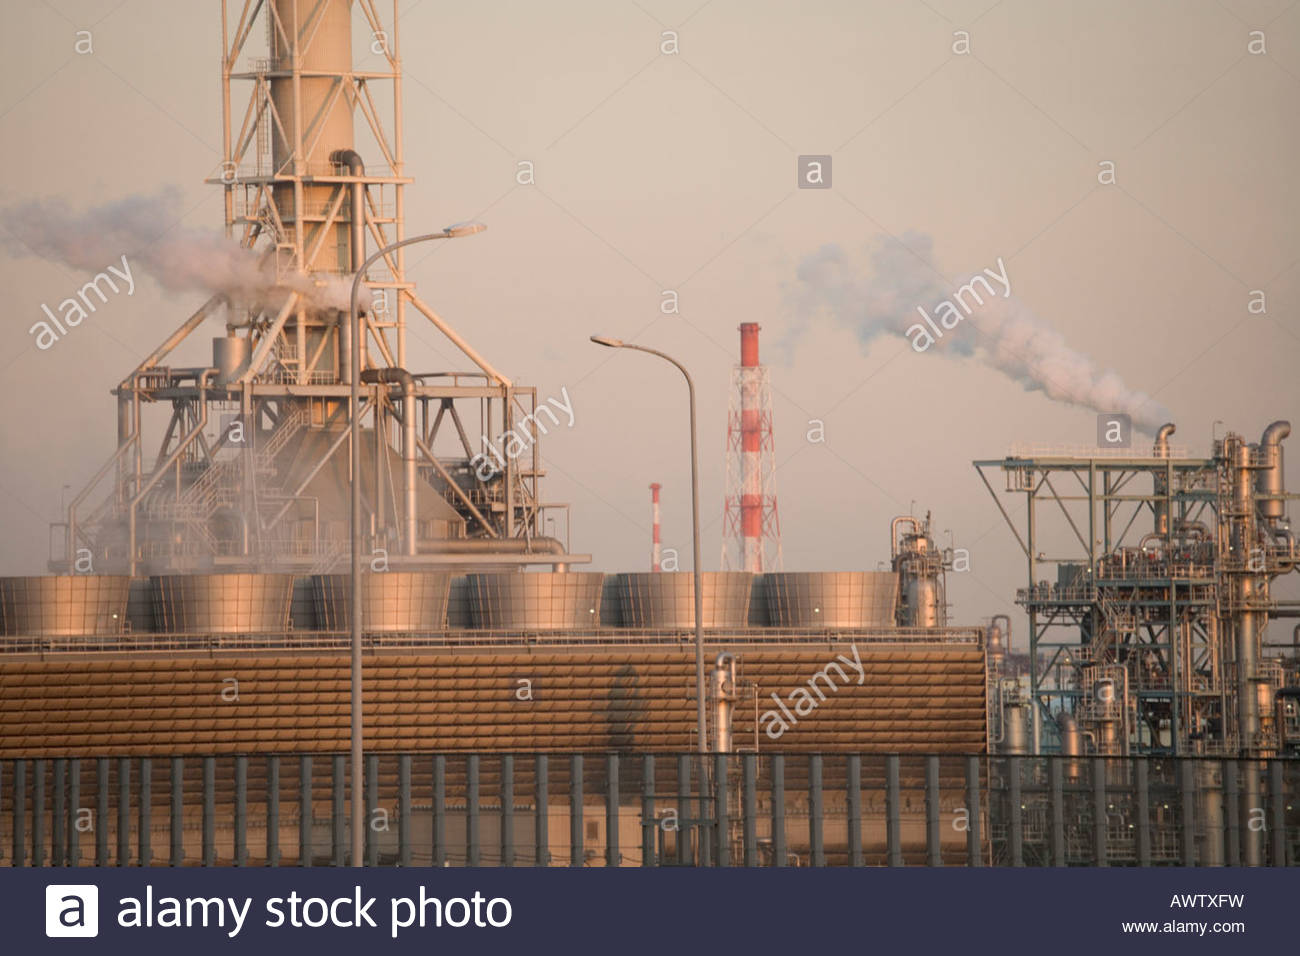 Utility Smoke Smokestack Stock Photos Amp Utility Smoke